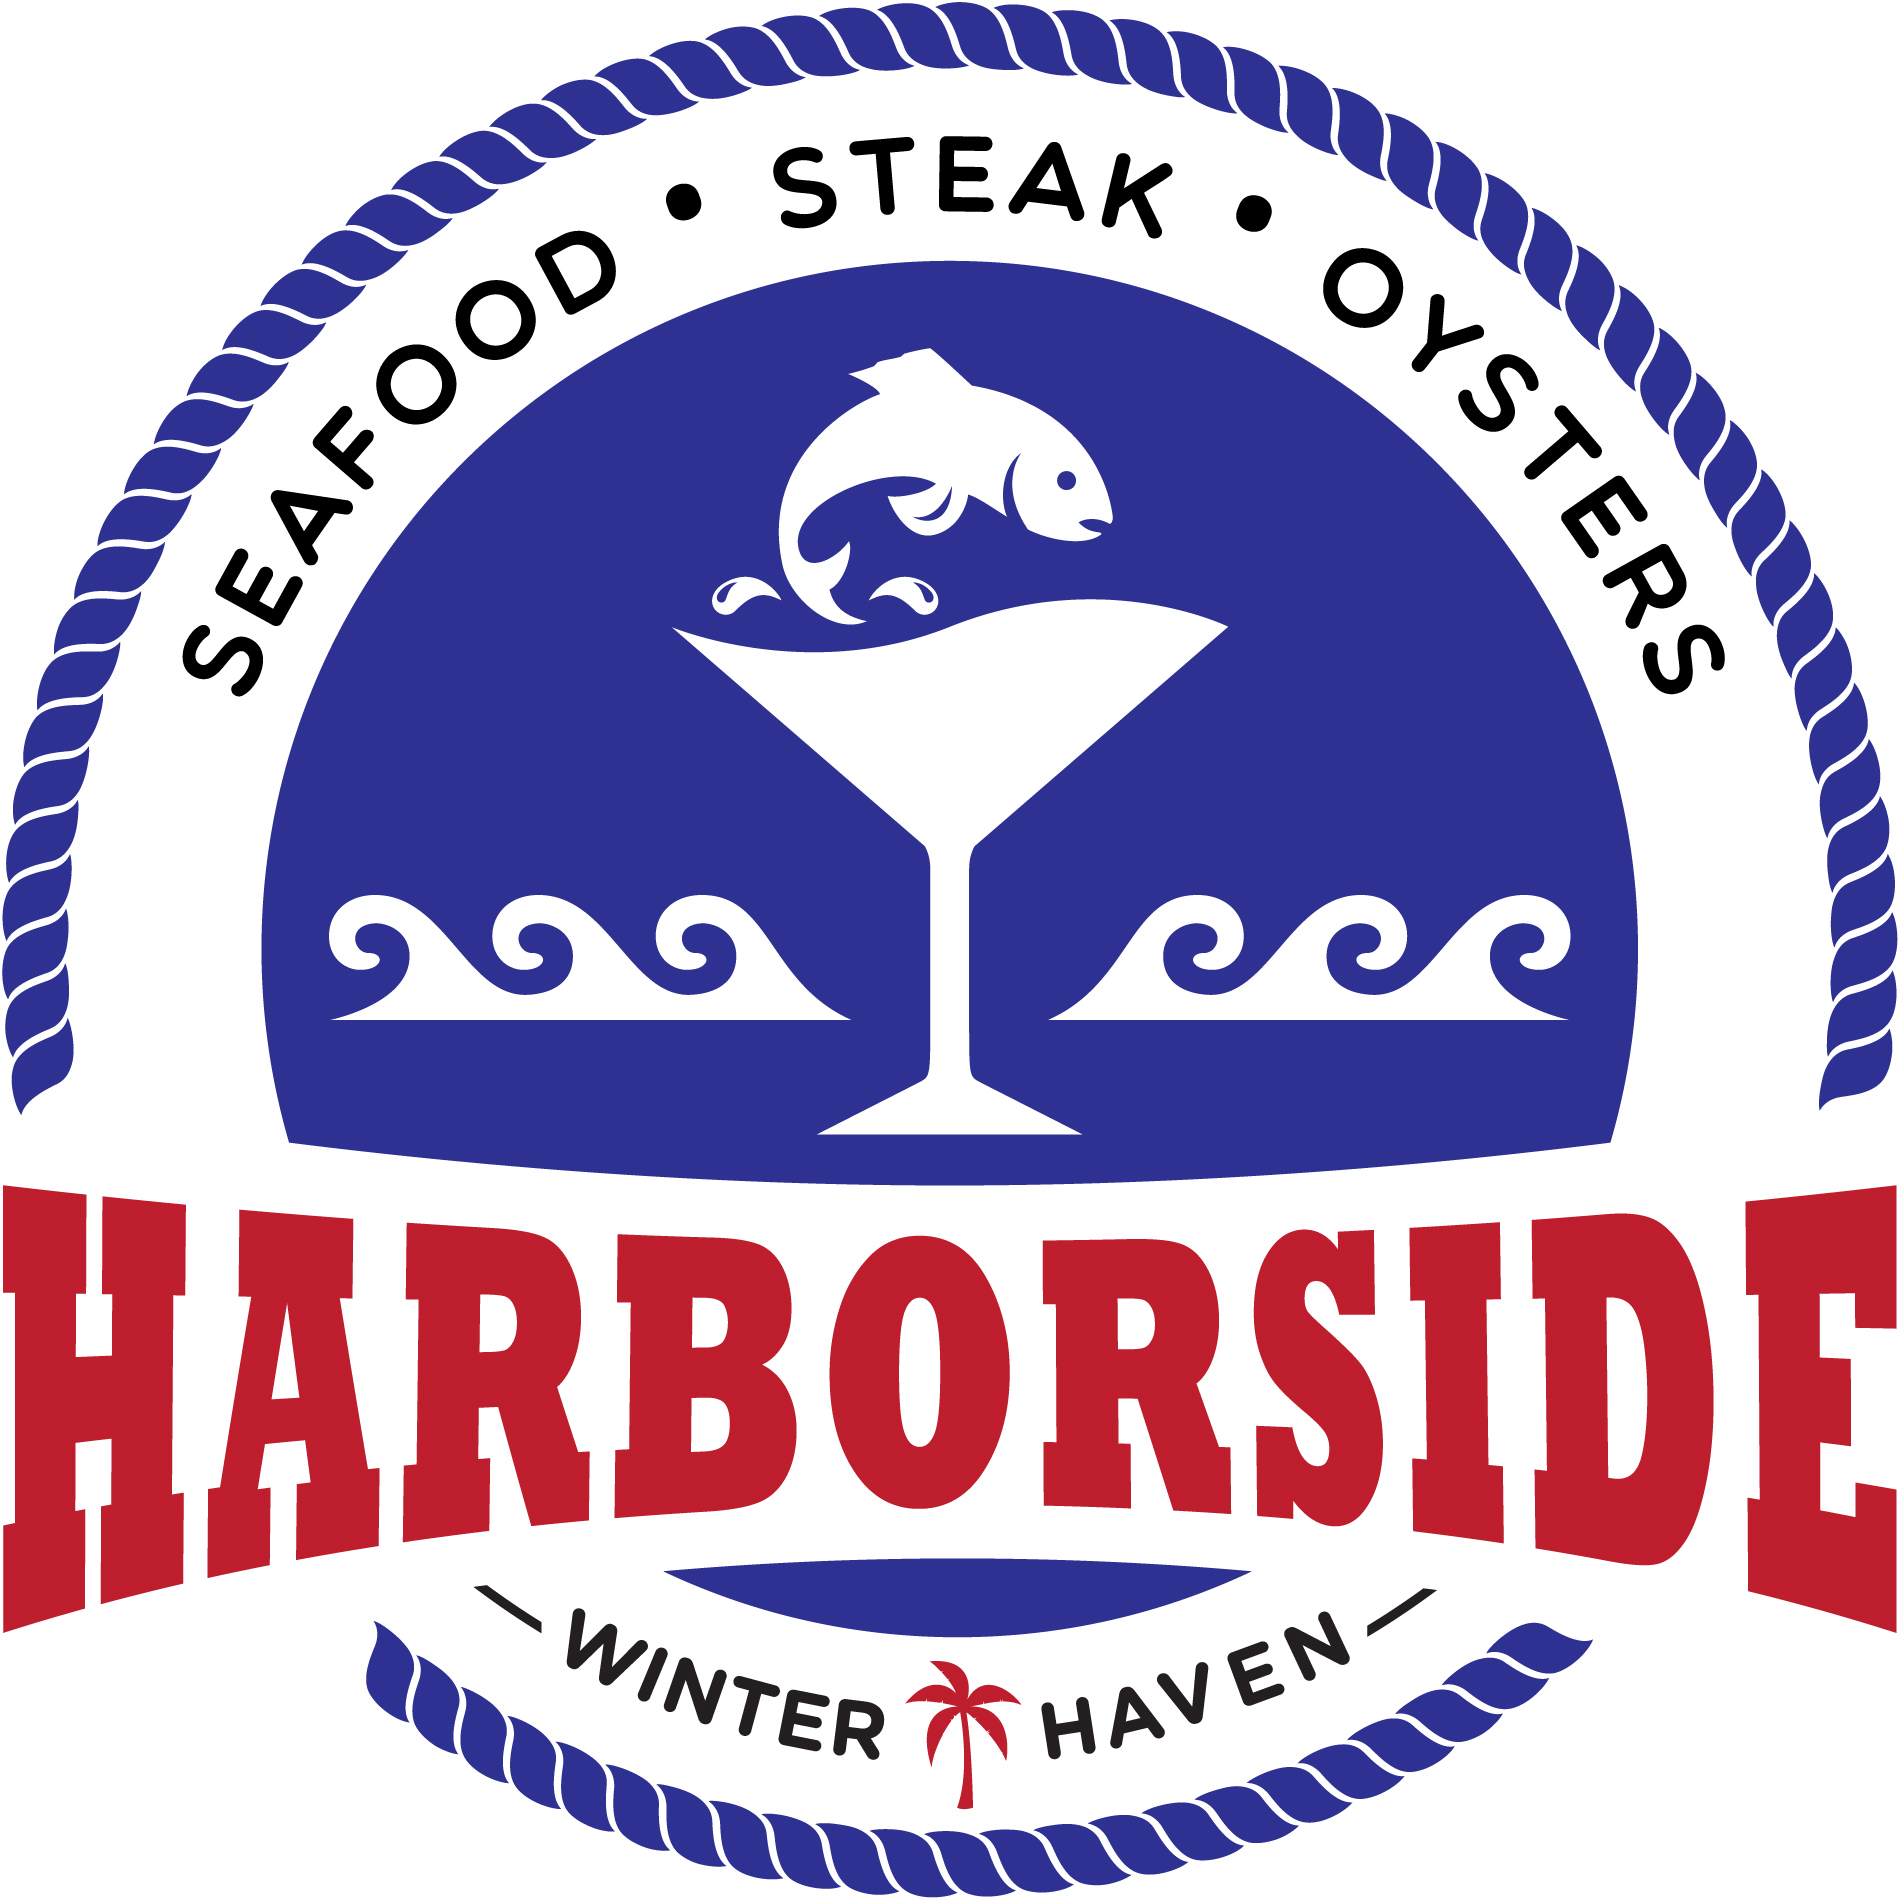 A logo for Harborside in Winter Haven